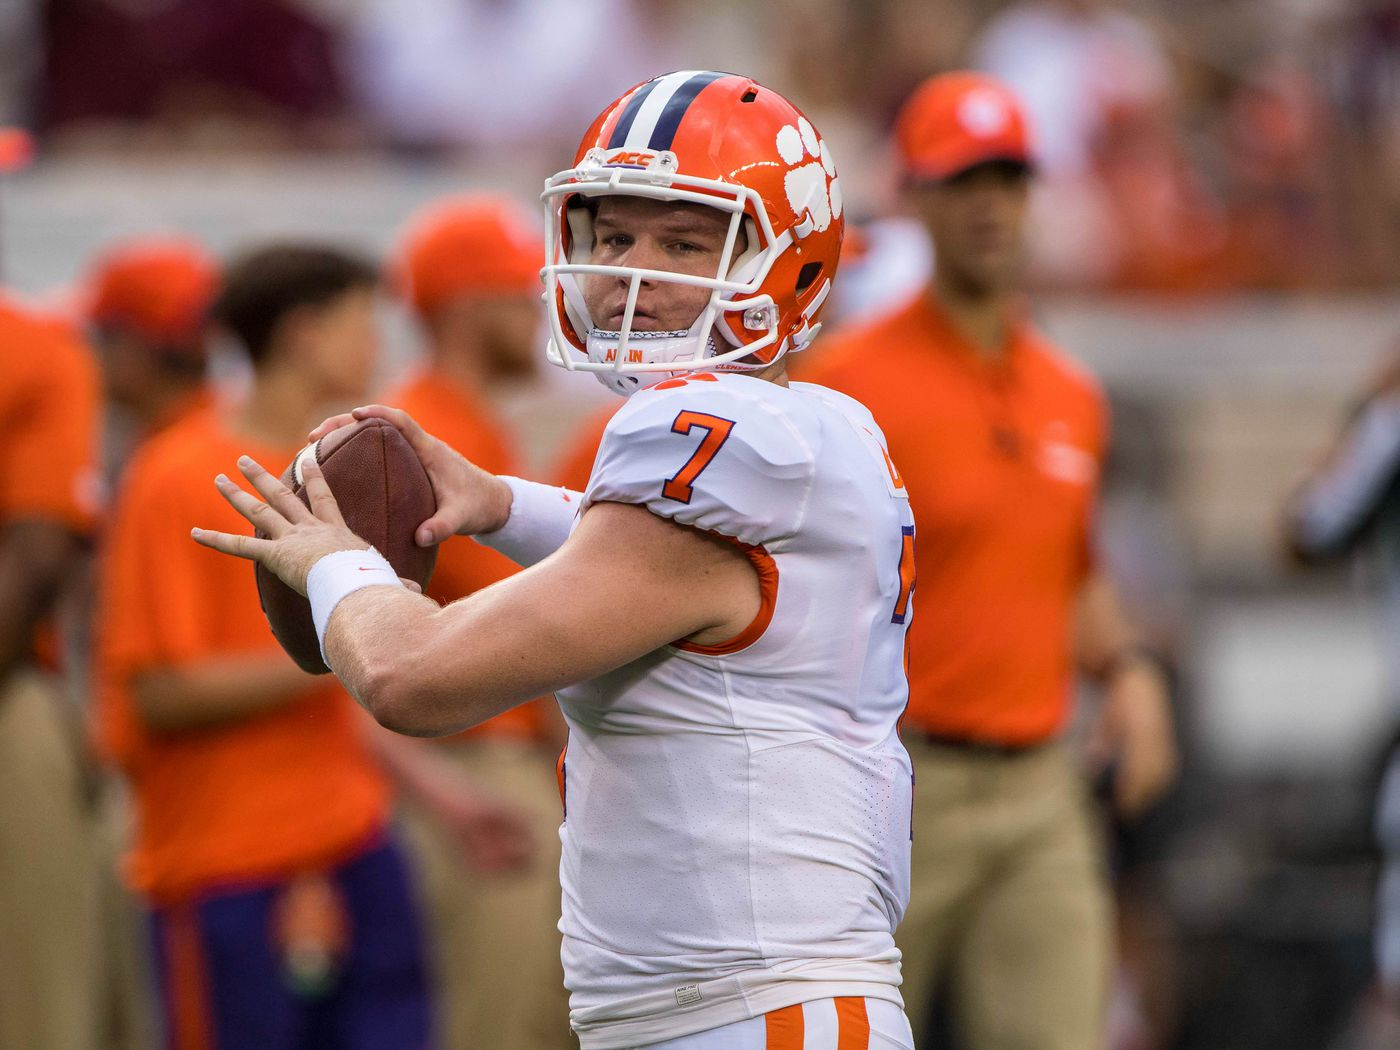 Meet Chase Brice, Clemson's next QB up after Trevor Lawrence ...